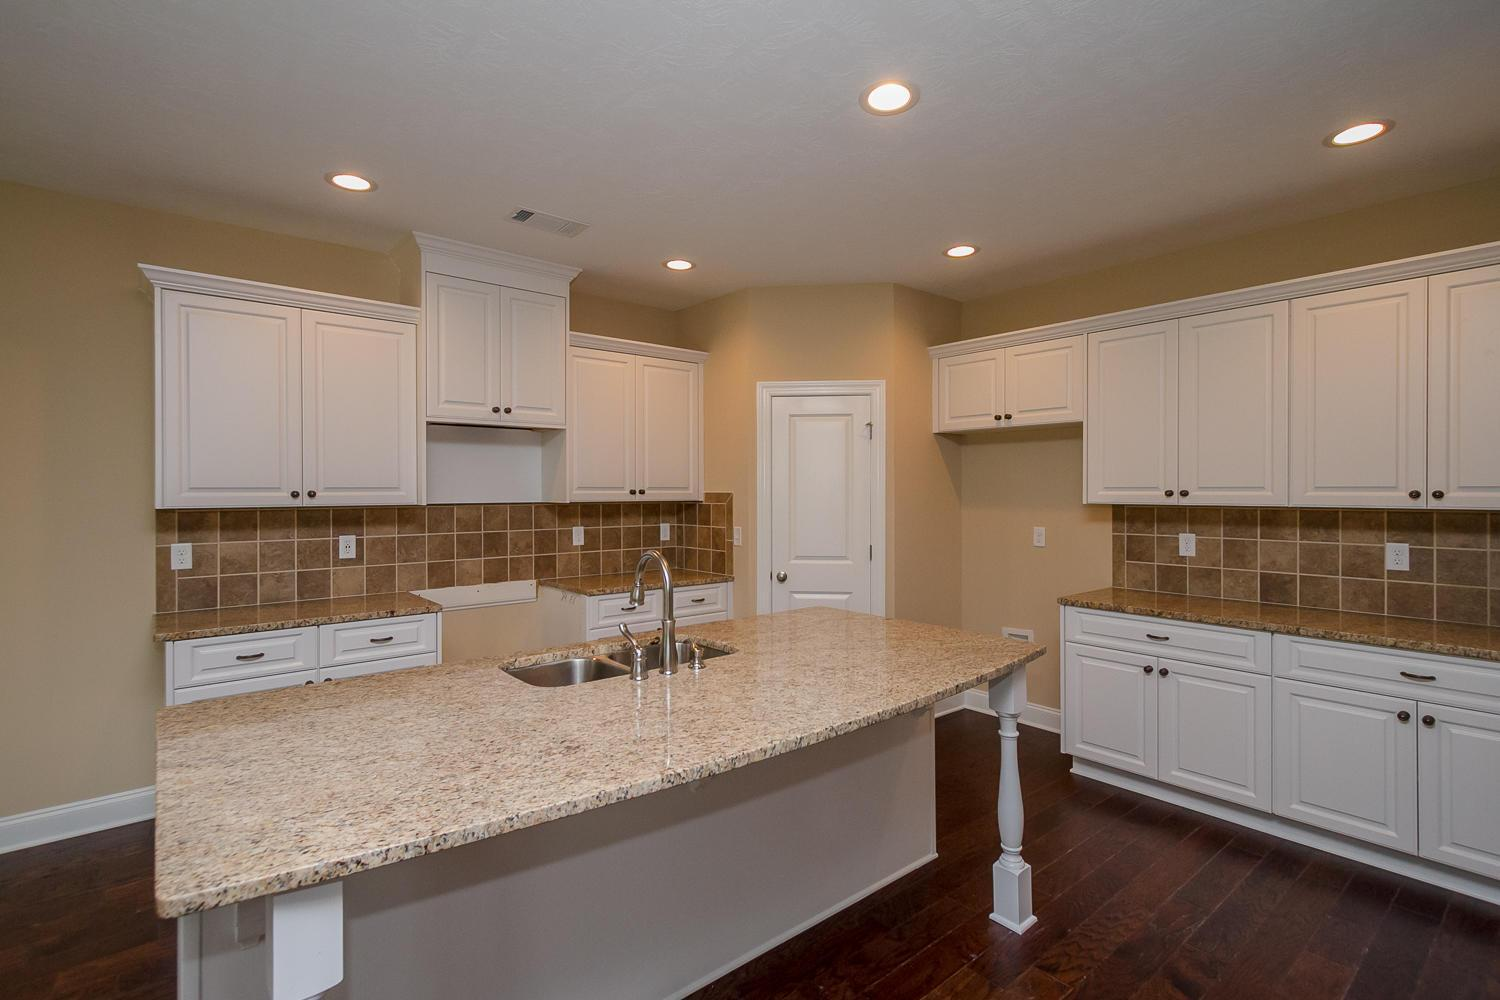 Kitchen featured in the Winter Park By Ivey Residential in Augusta, GA